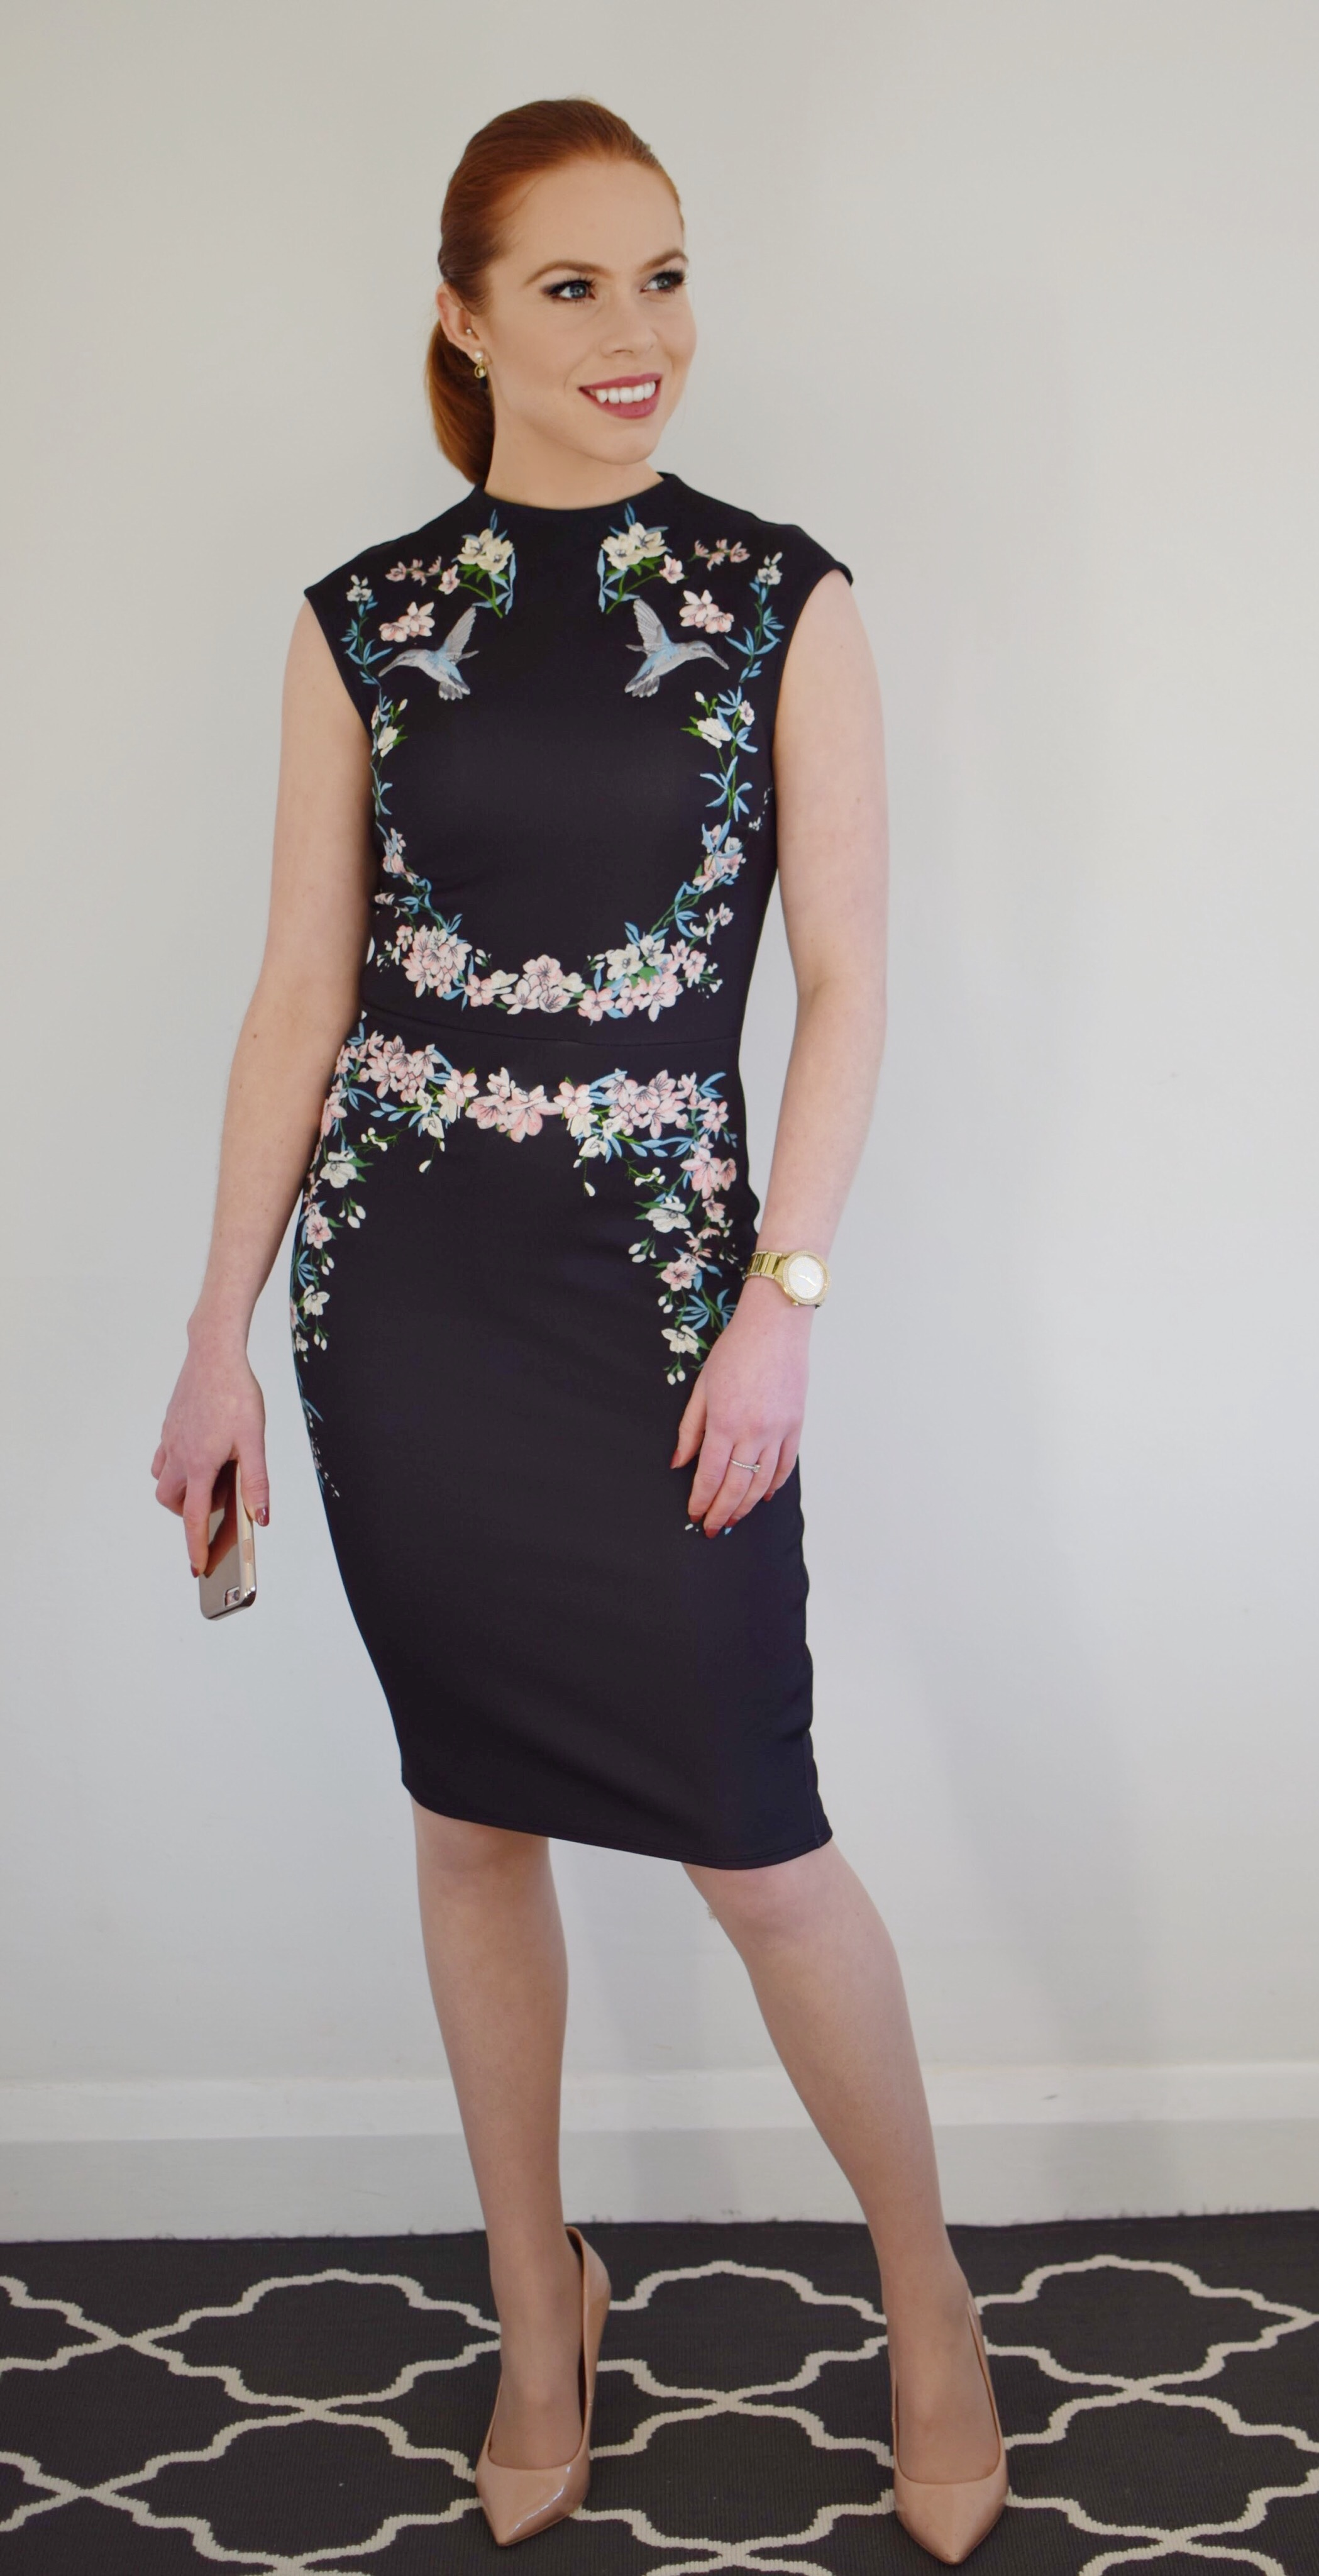 For today's office look: I'm wearing an embroidered dress from Lipsy, nude Aldo heels, Michael Kors watch and Cynthia Rowley phone cover (all linked below).